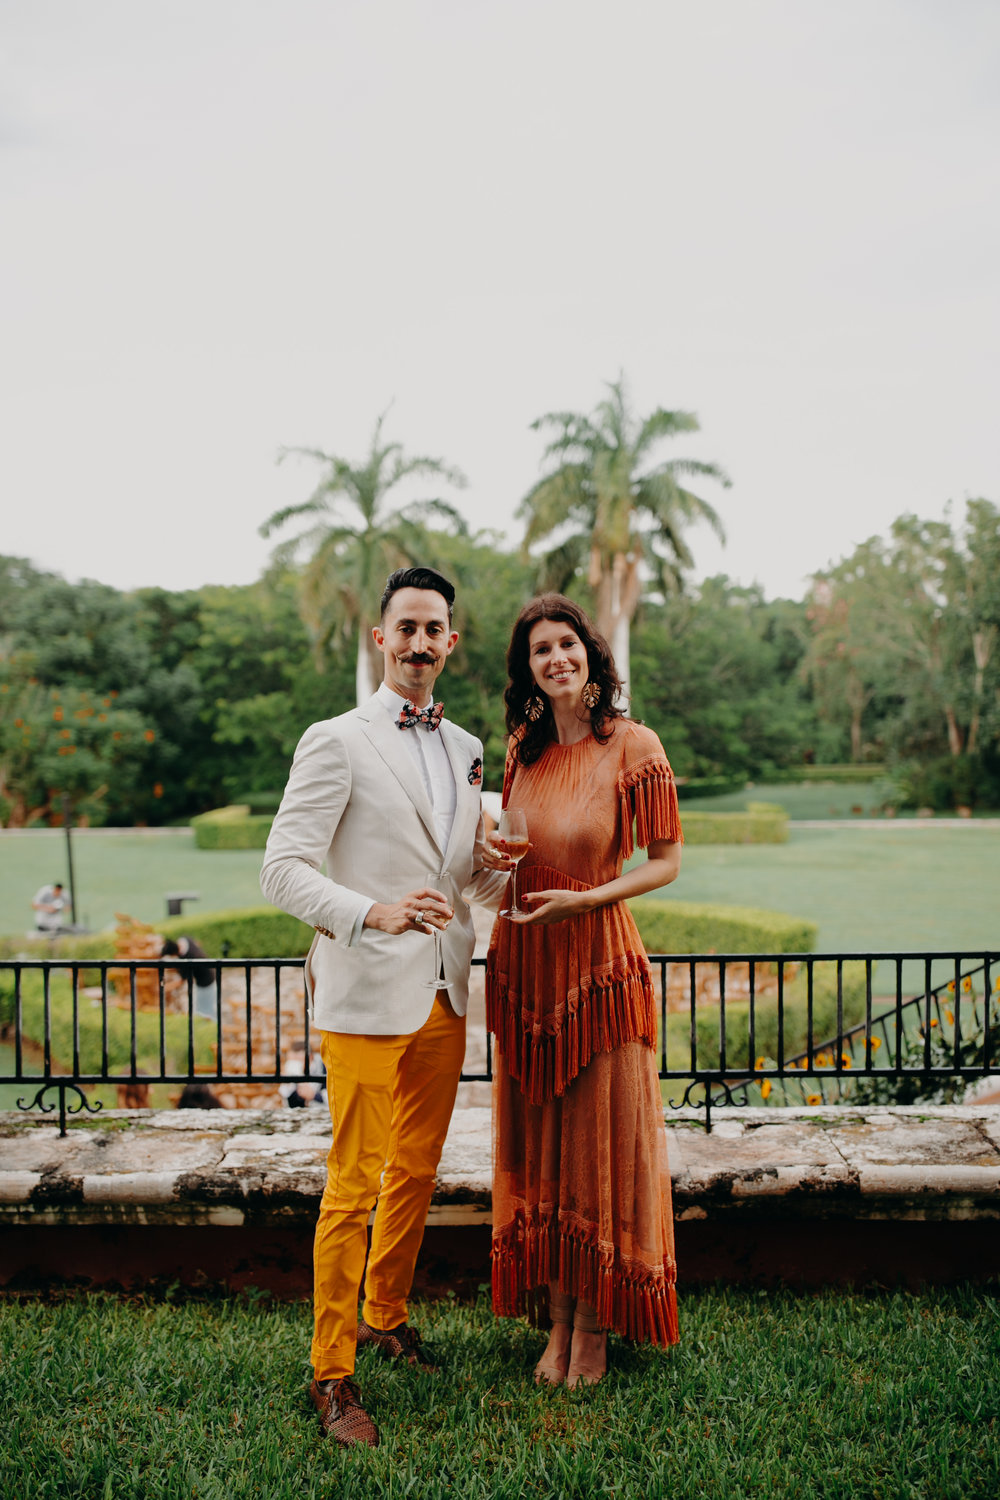 Hacienda Temozon Yucatan Mexico Wedding | Ida & Peter Emily Magers Photography-1248.jpg